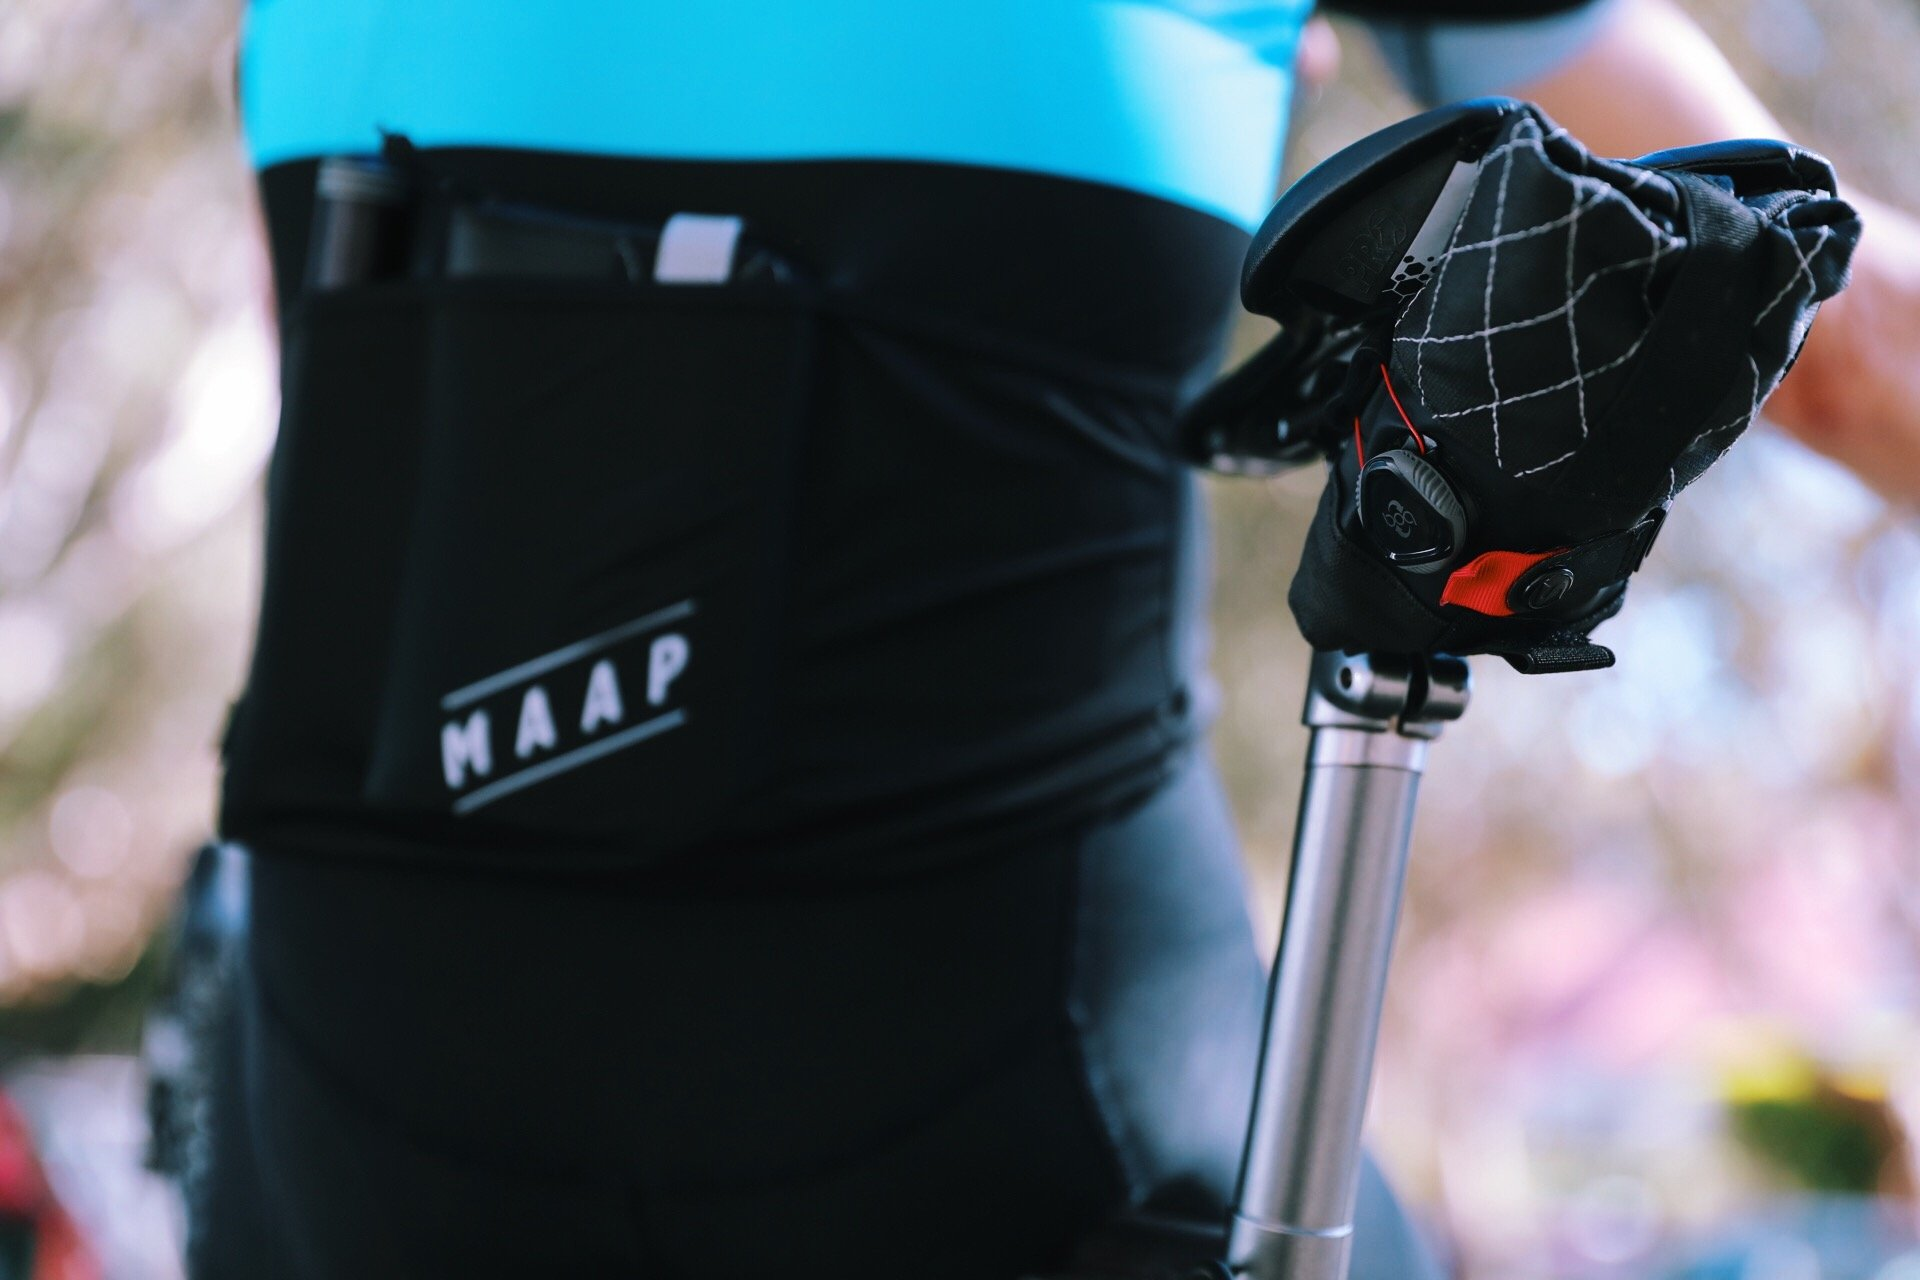 SILCA Bundled Seat Roll Premio, Regulator and Multi-tool included w/ Saddle Bag by SILCA (Image #1)